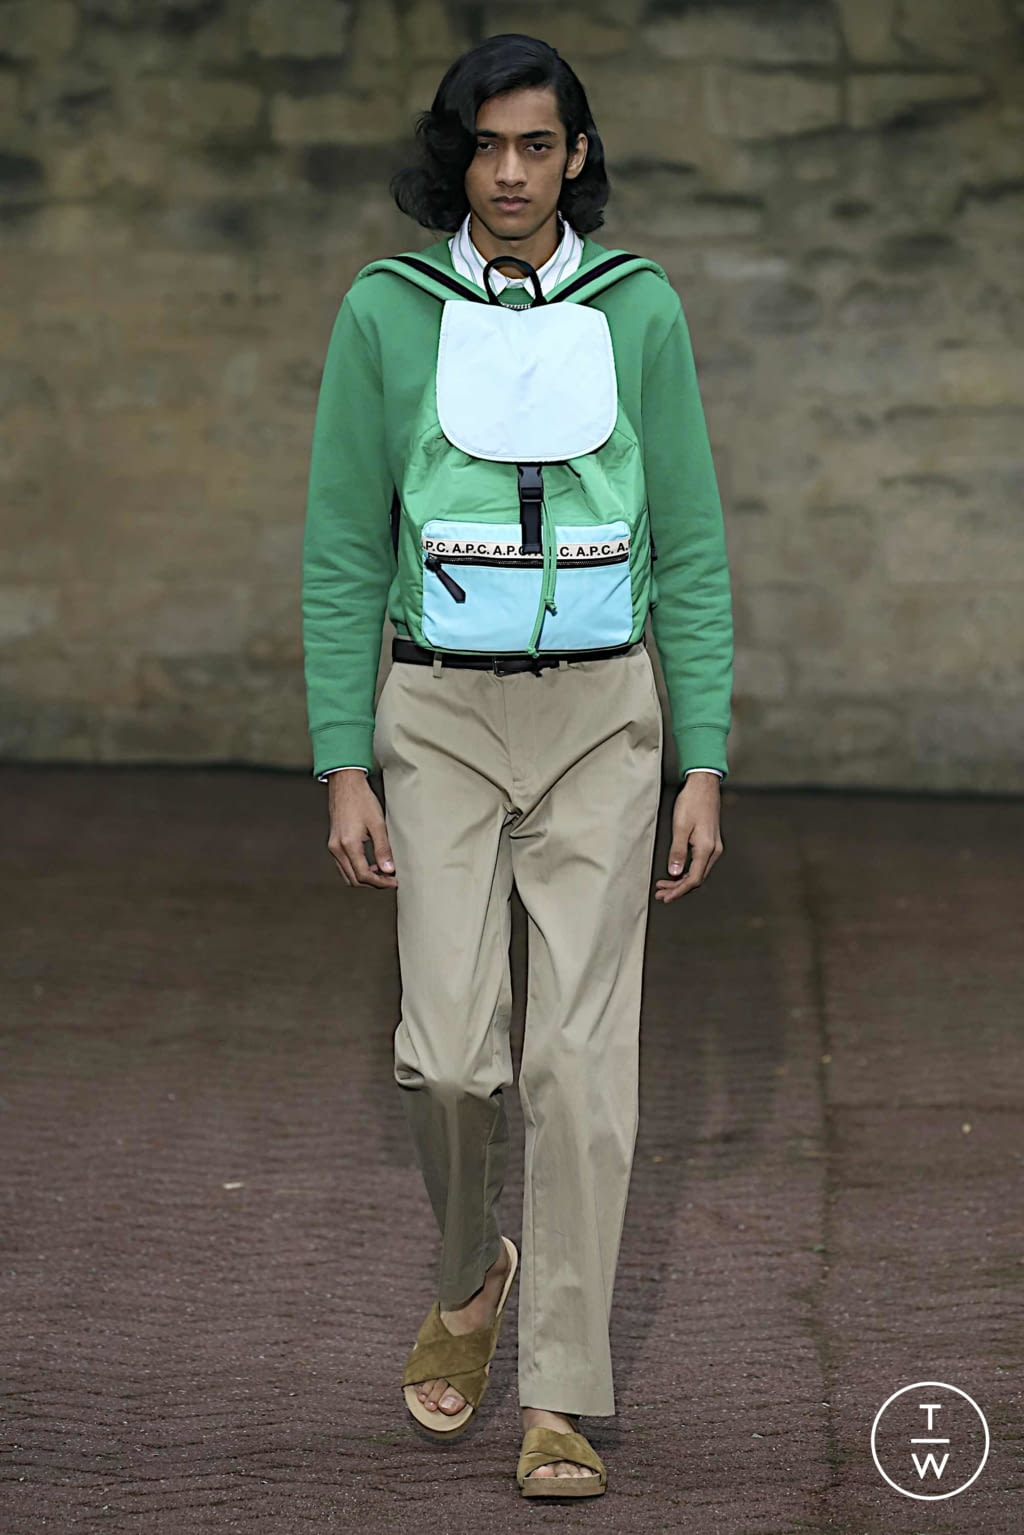 Fashion Week Paris Spring/Summer 2020 look 10 de la collection Apc womenswear